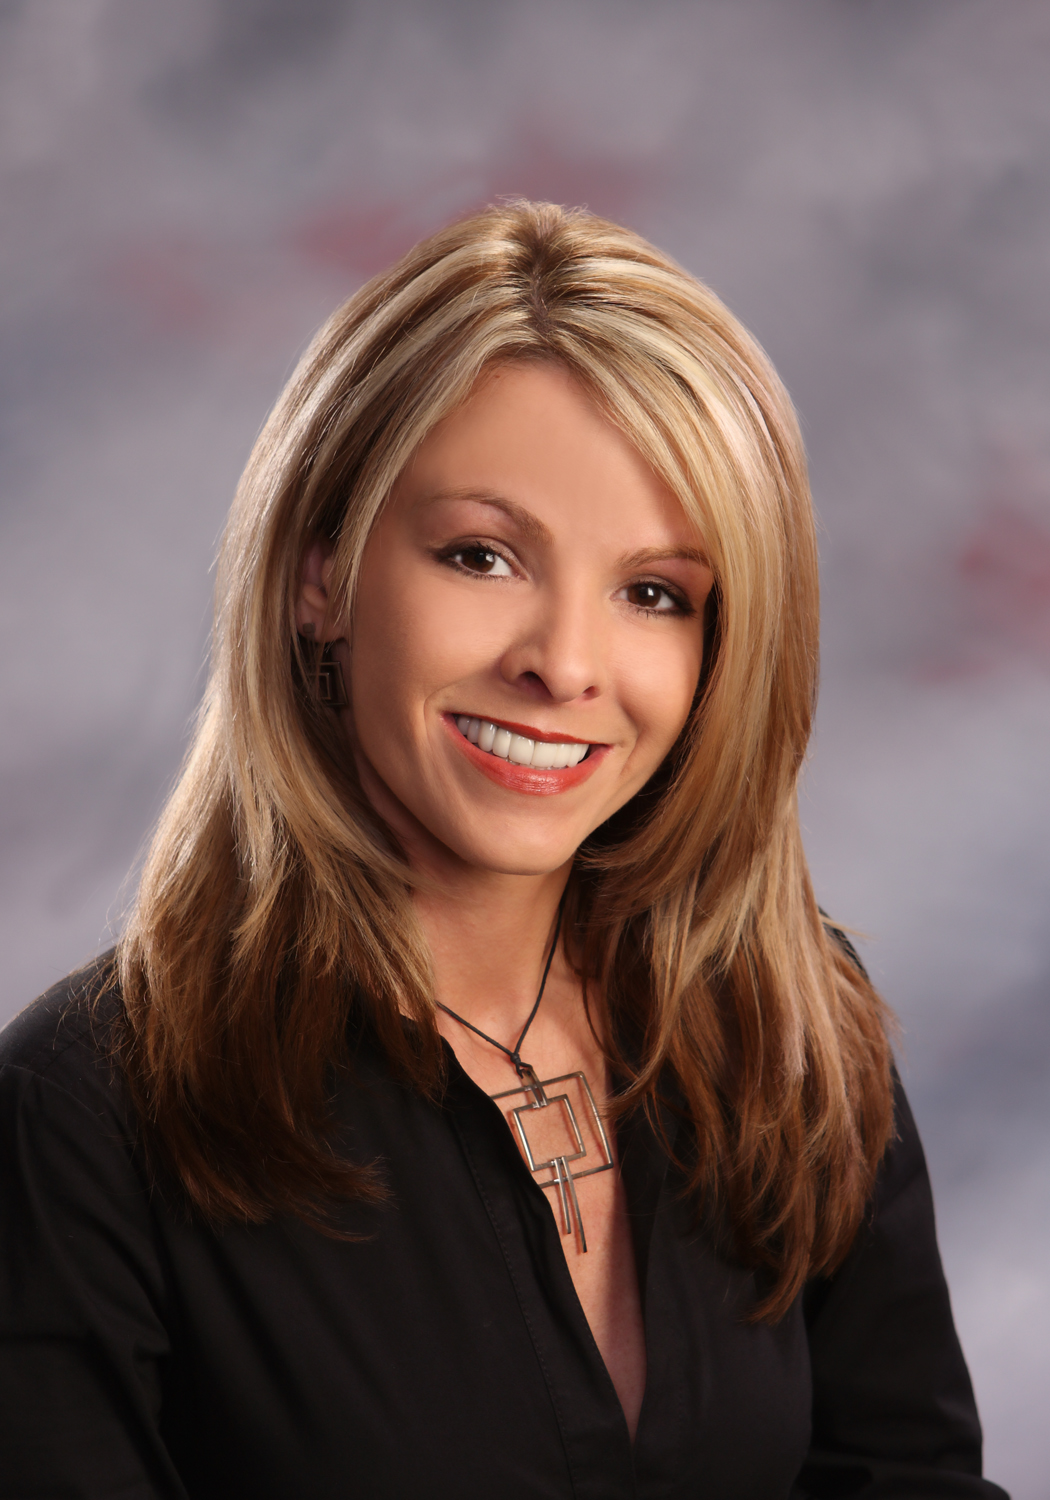 Amy Baker Williams Real Estate Agent Wyomissing Pa